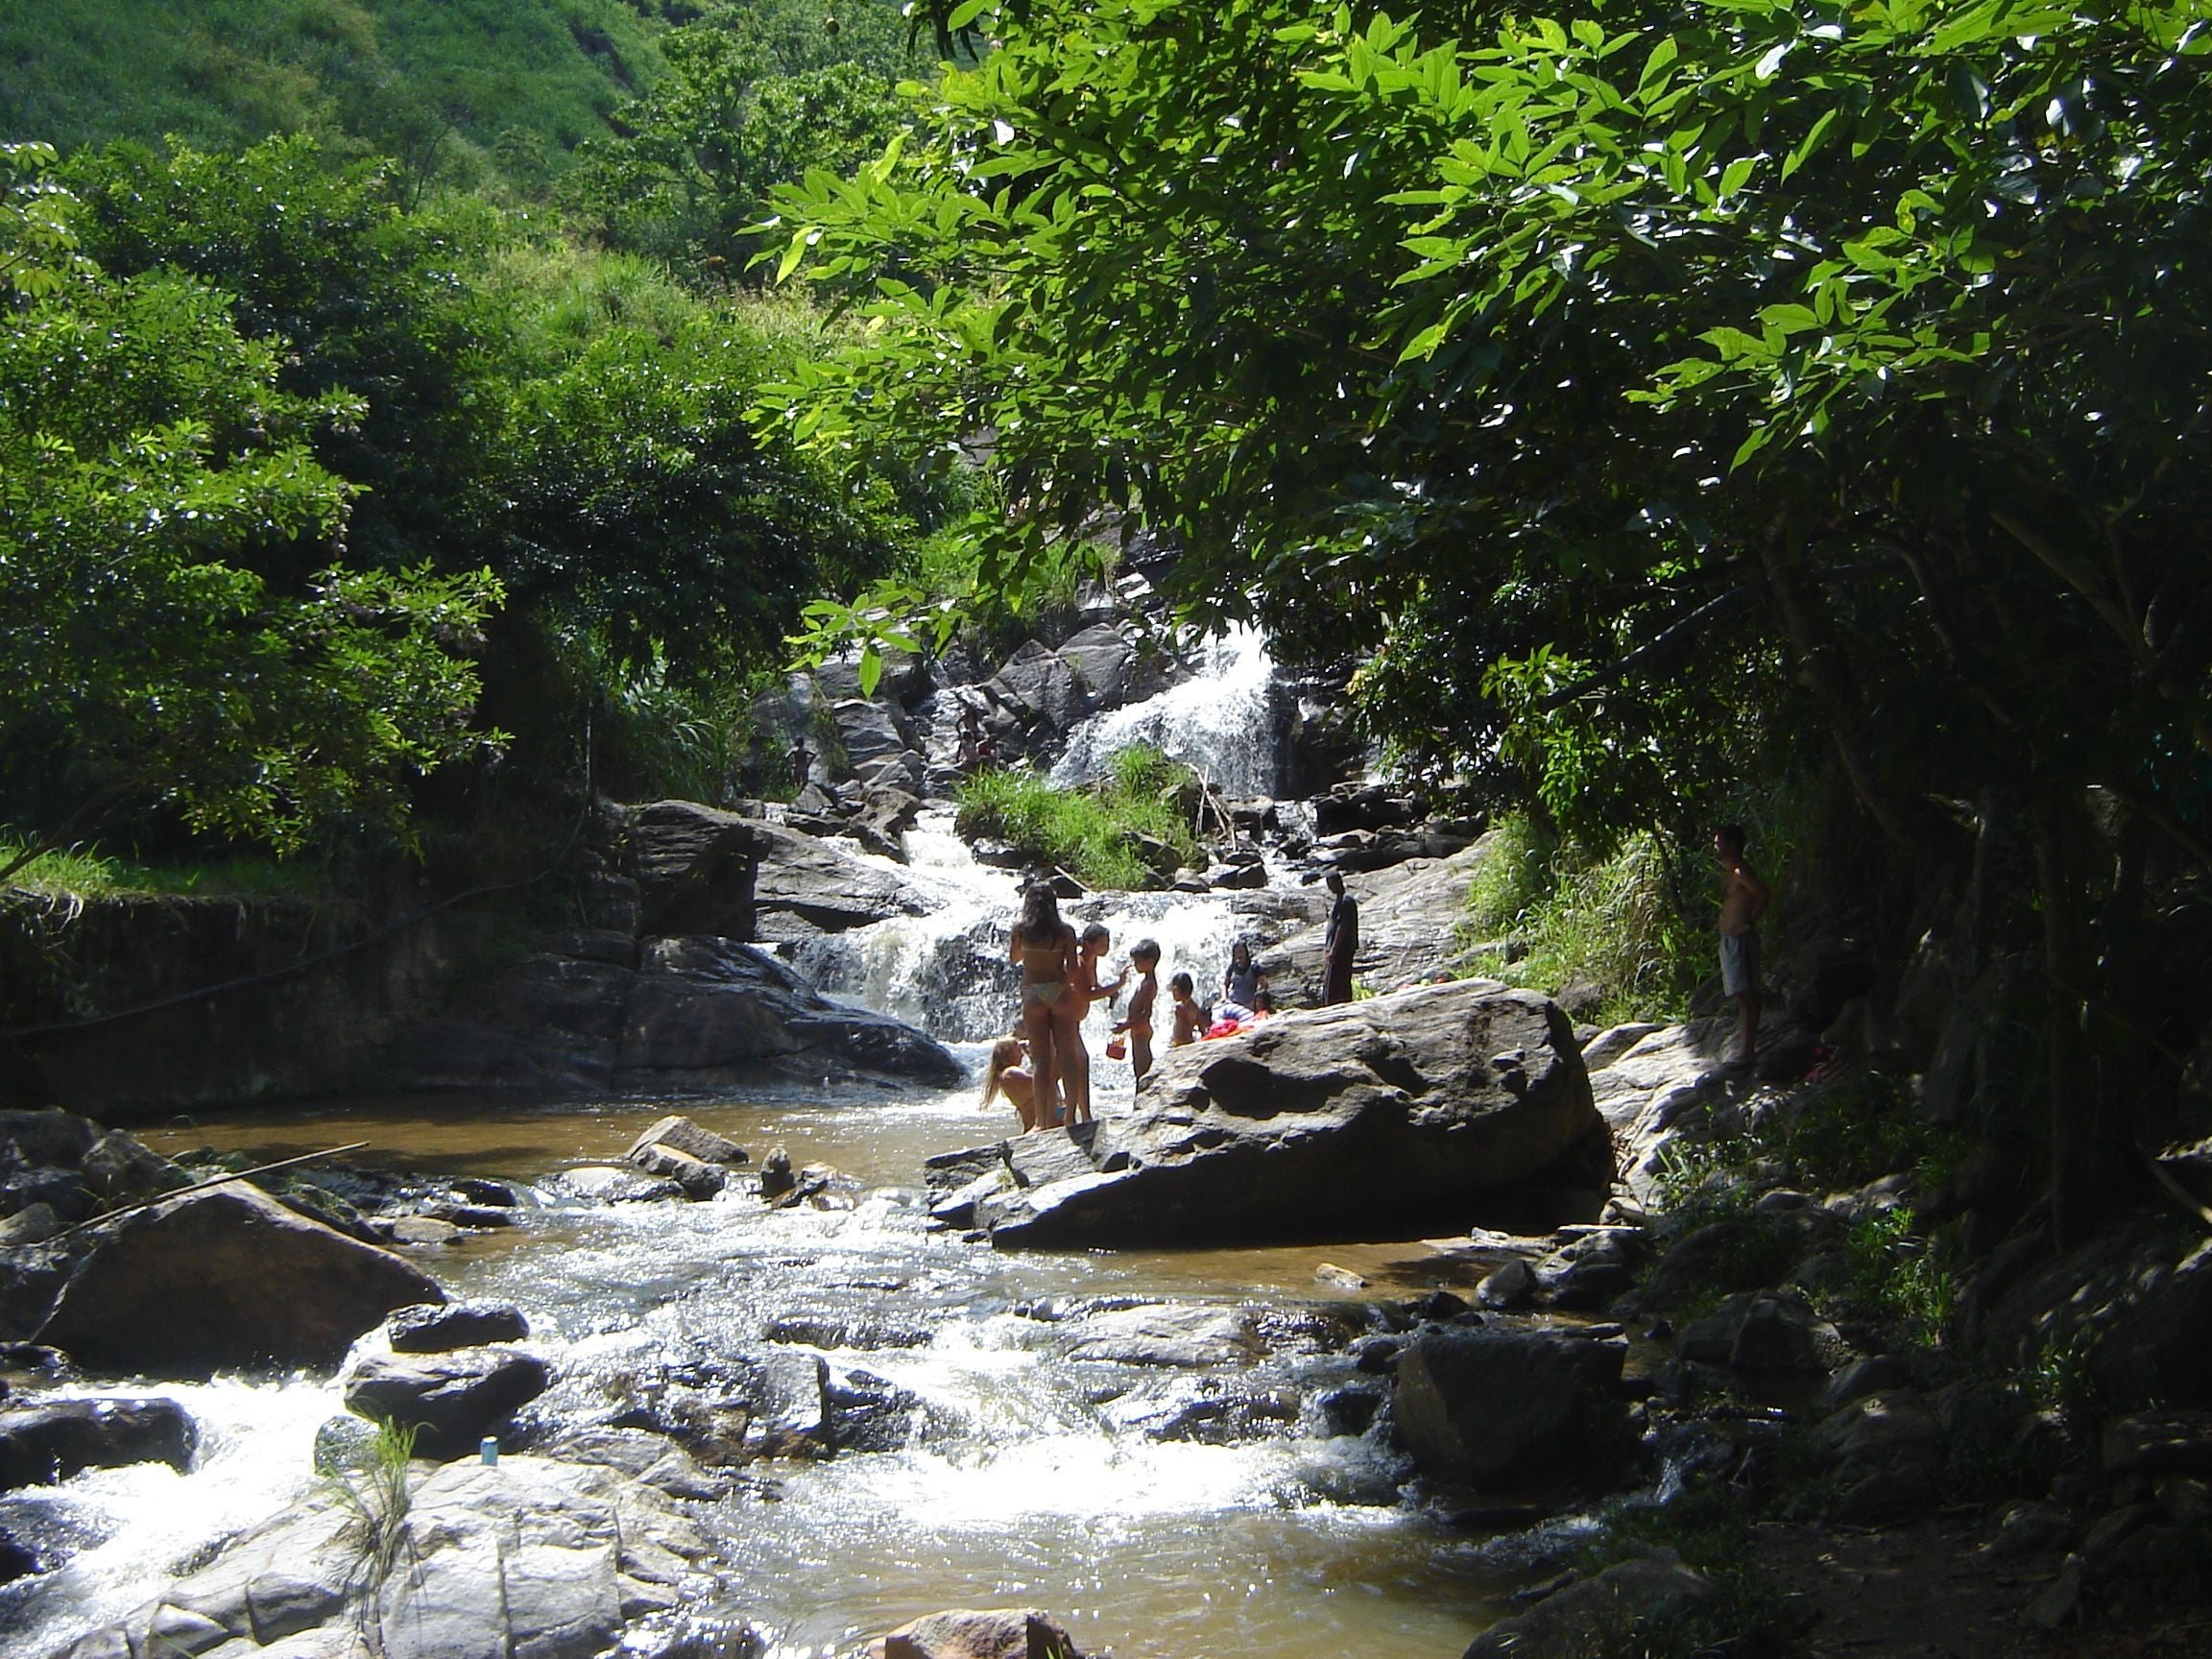 Water in Miguel Pereira